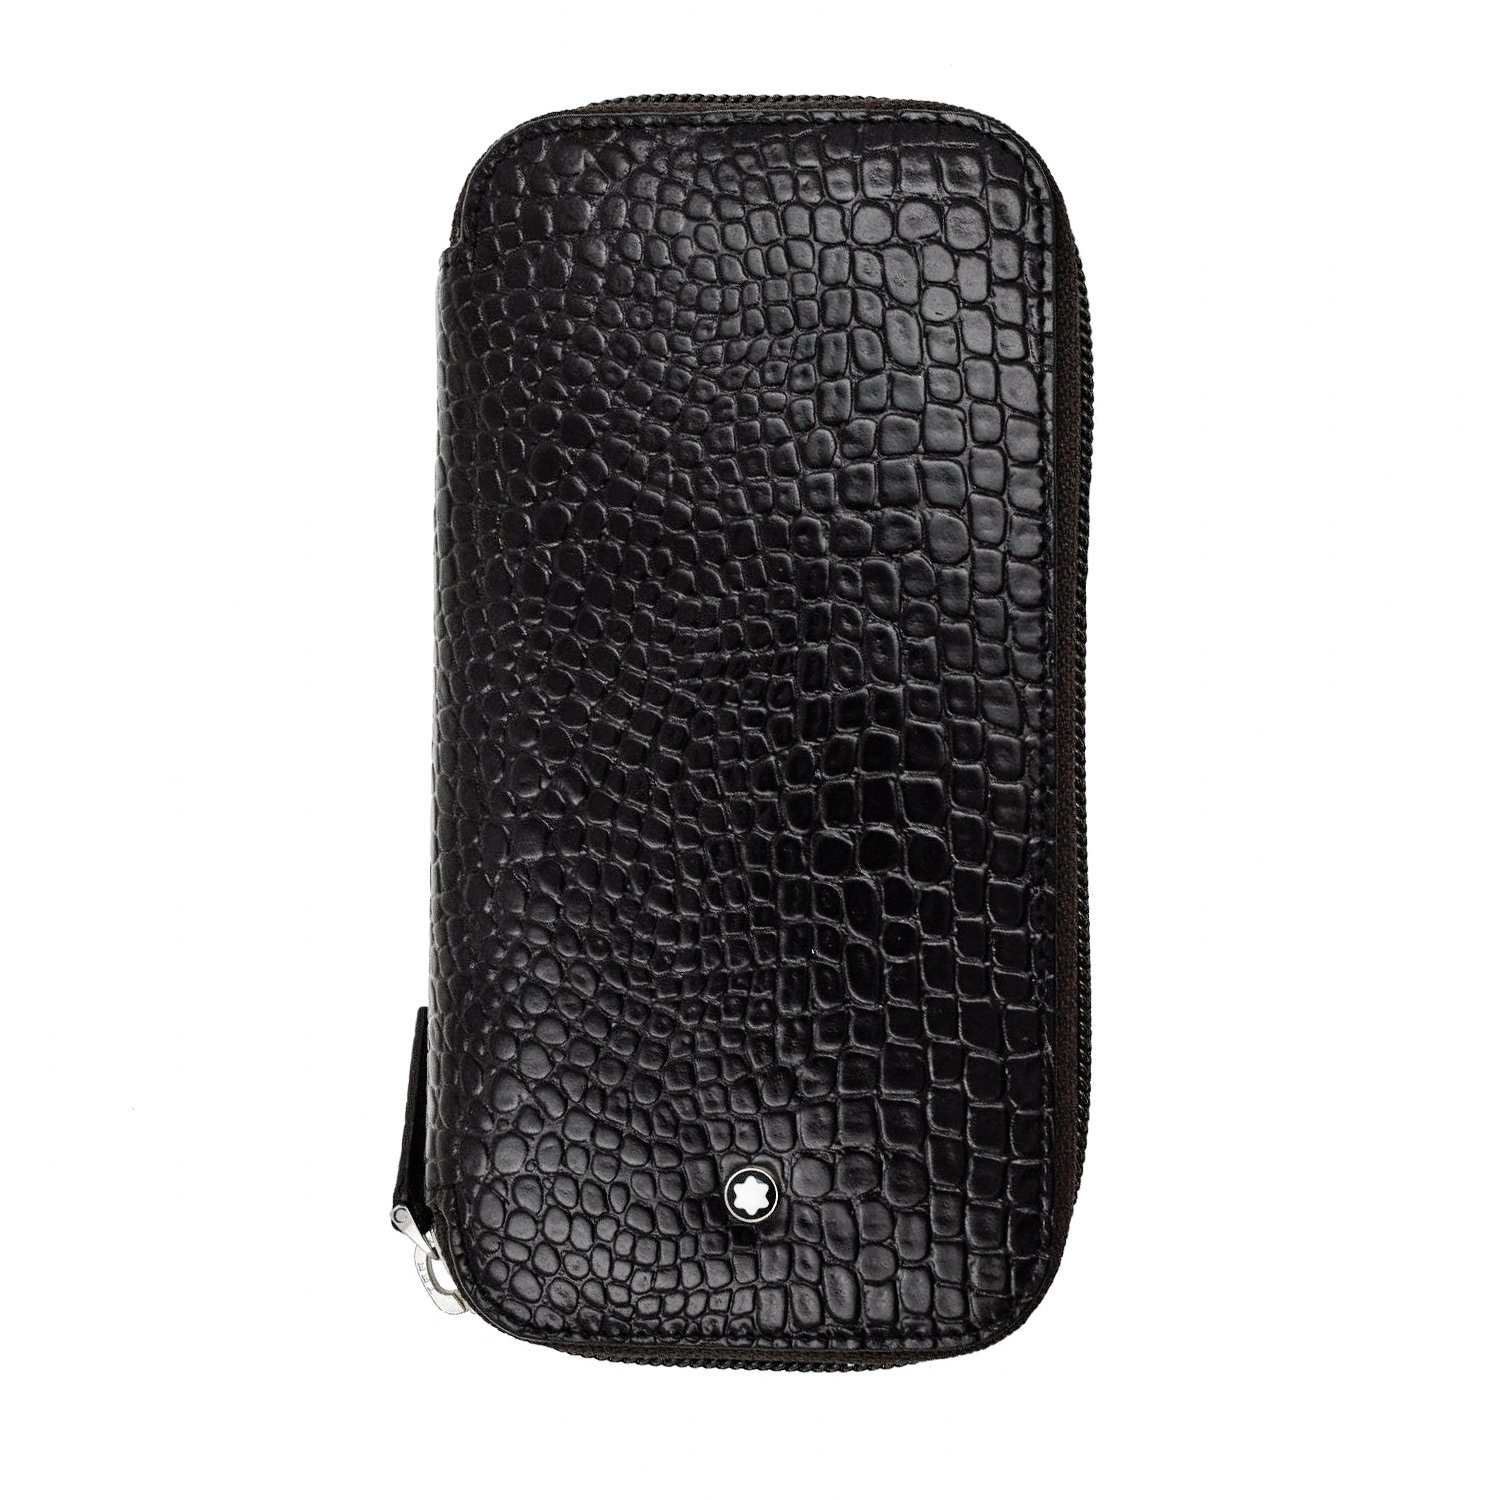 Montblanc 105788 Selection Travel Watch Pouch by MONTBLANC